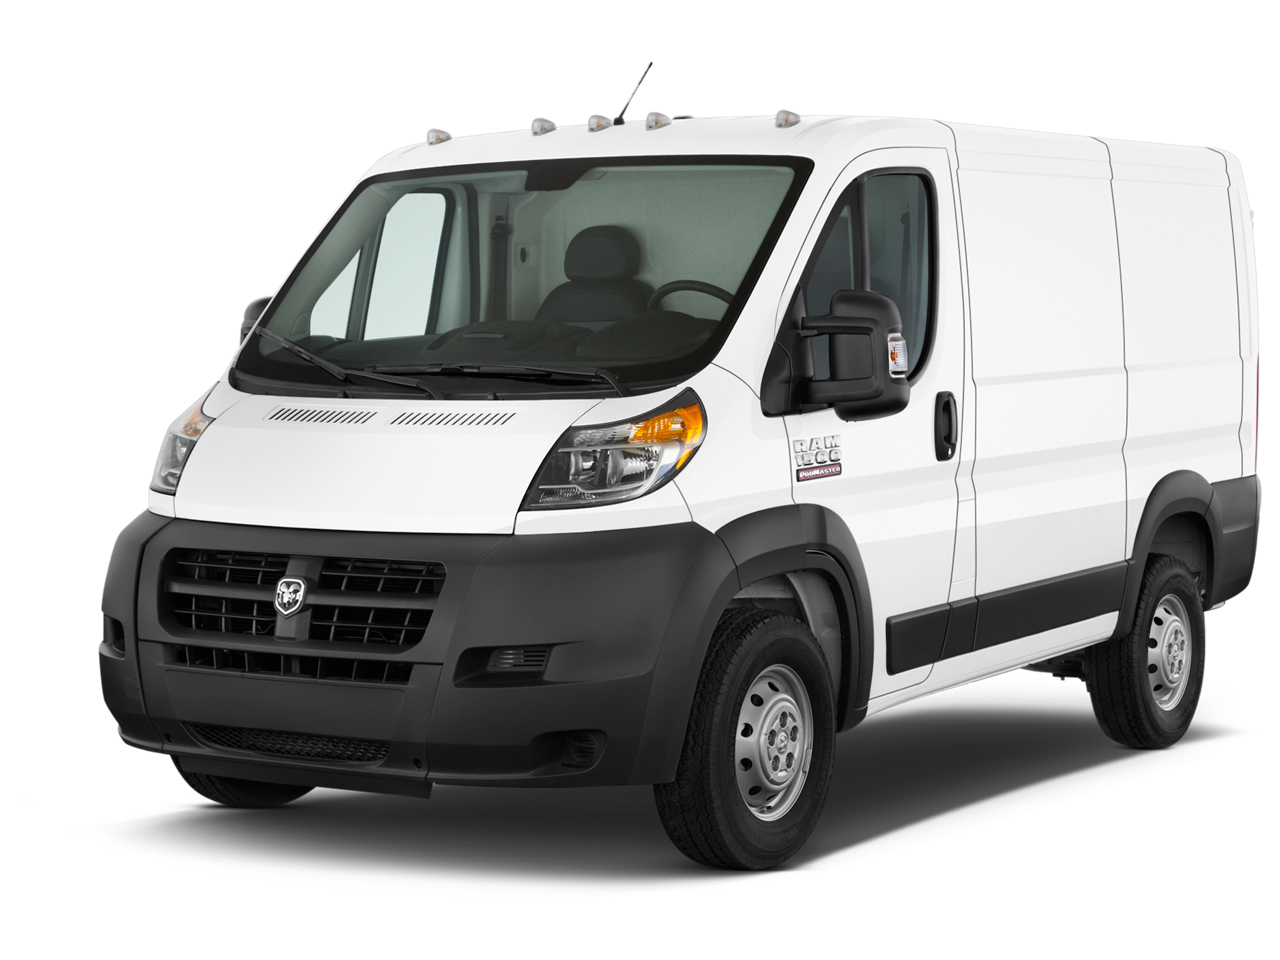 2016 ram promaster summary review the car connection. Black Bedroom Furniture Sets. Home Design Ideas